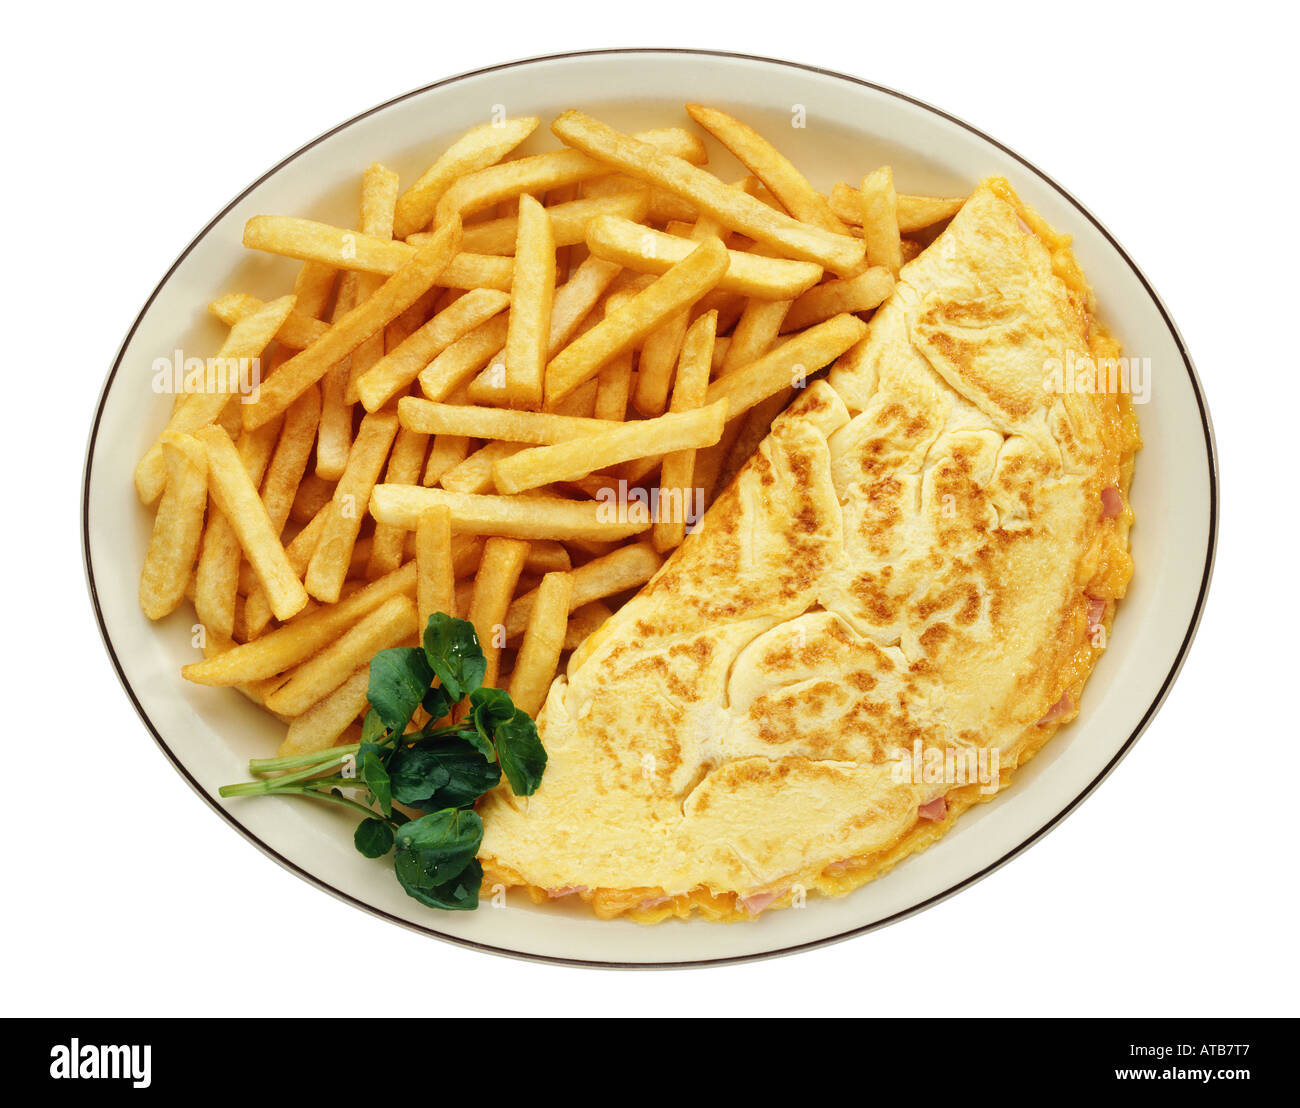 An omelet and French fries on a plate - Stock Image